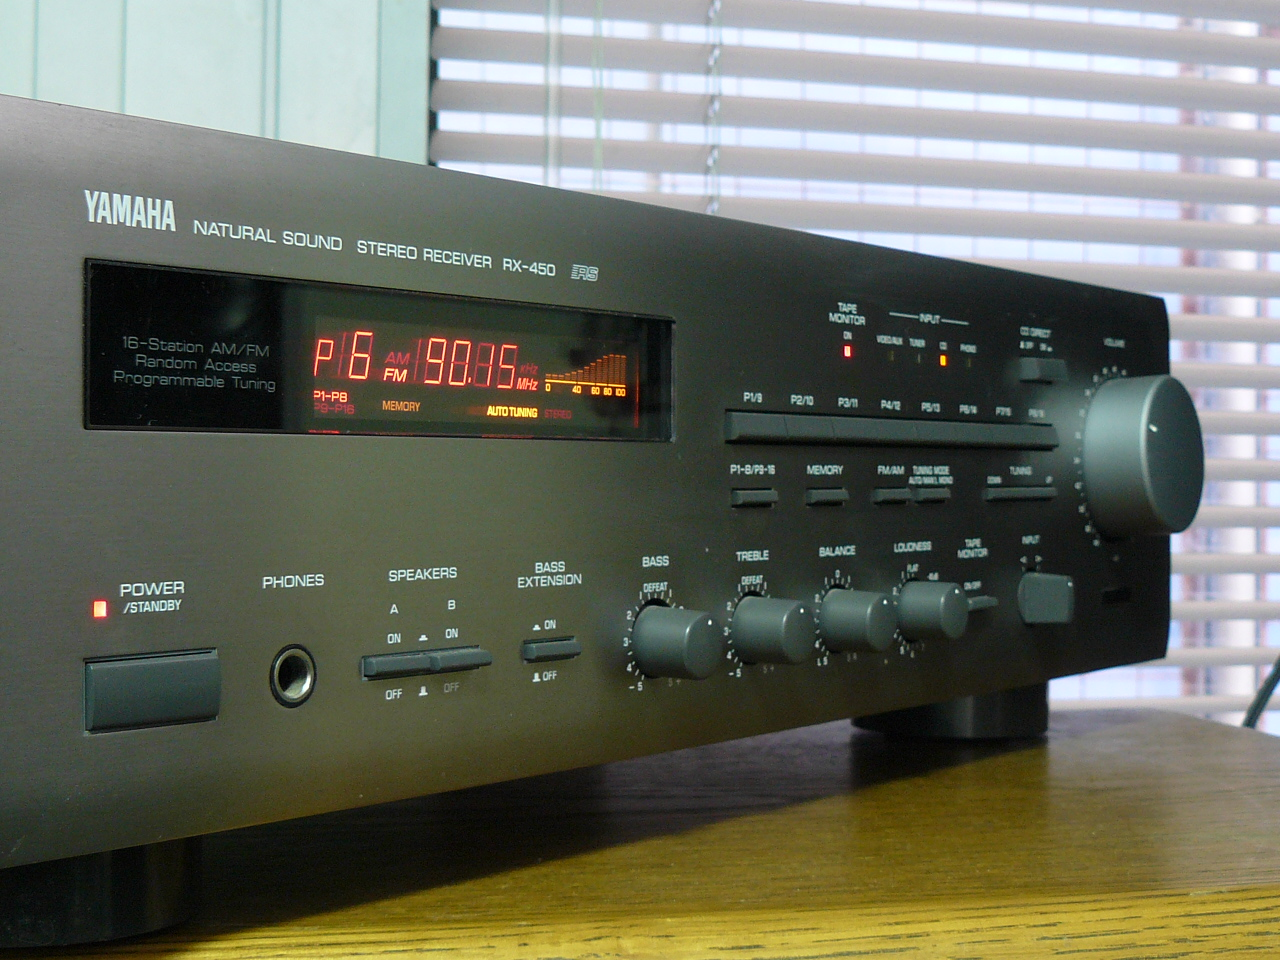 Yamaha rx 450 rs amplifier receiver tuner natural sound ebay for Yamaha amplifier receiver